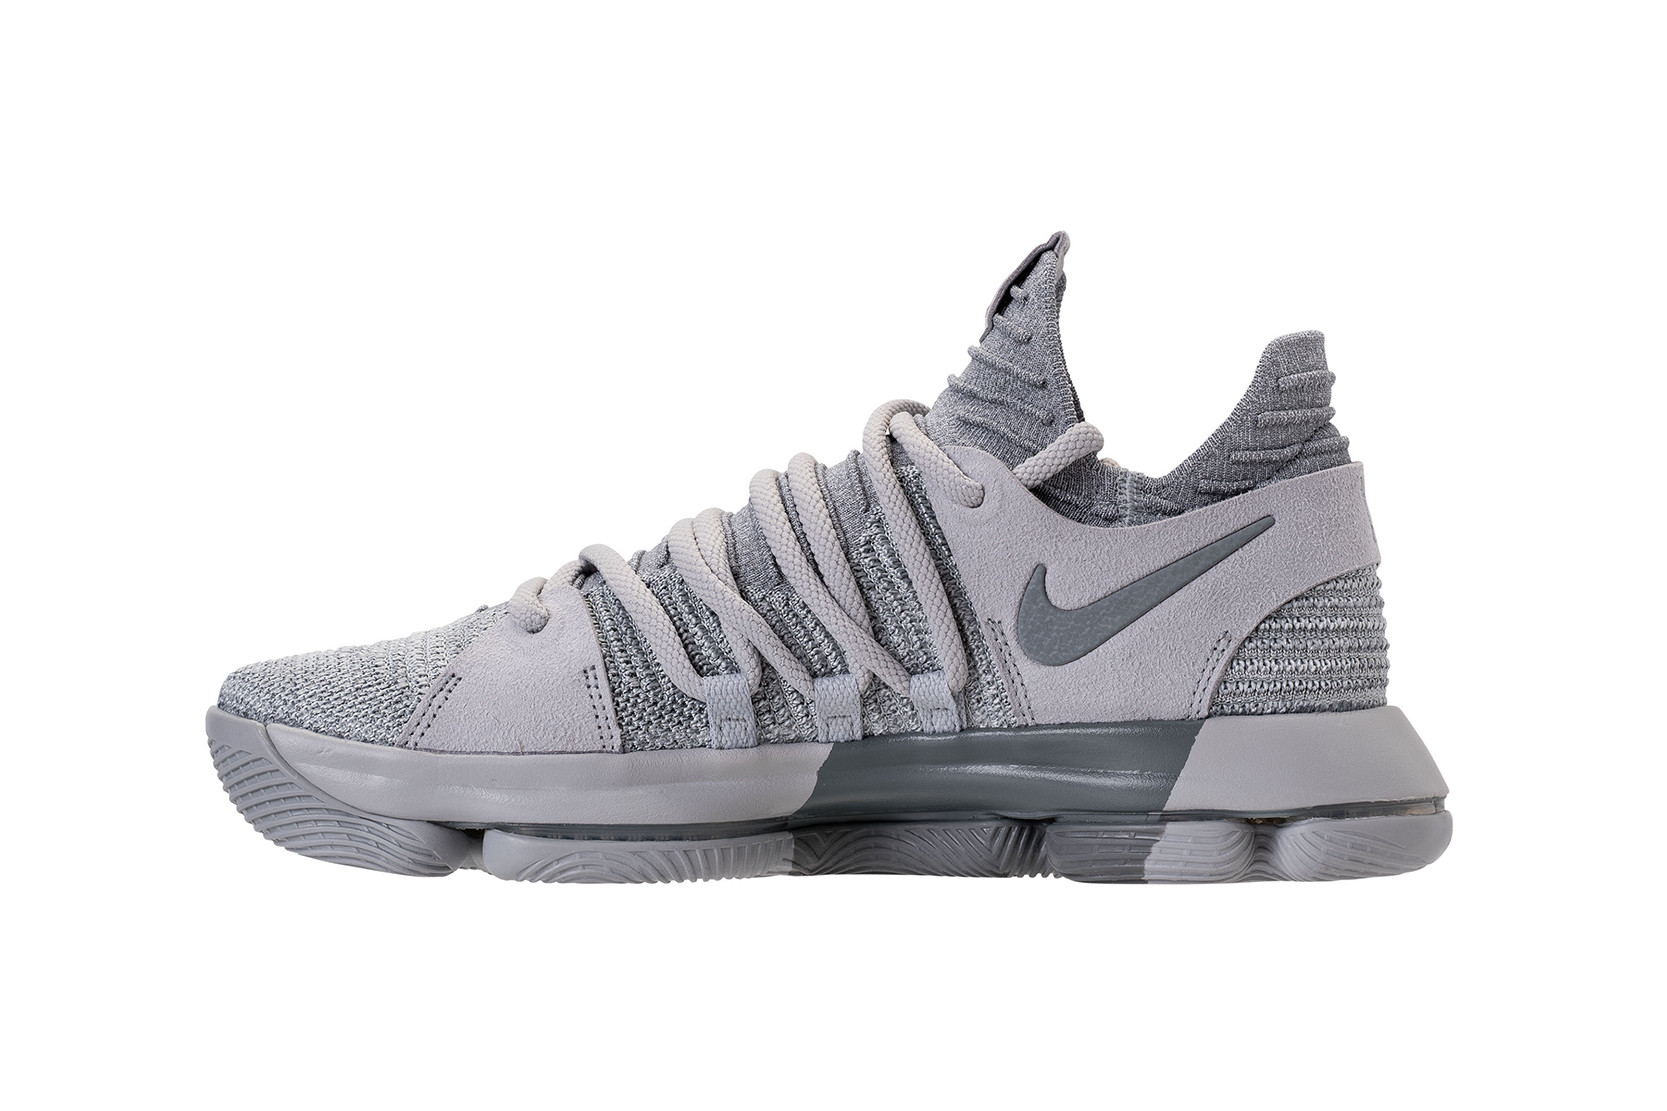 Nike KD 10 Gray Set To Release in